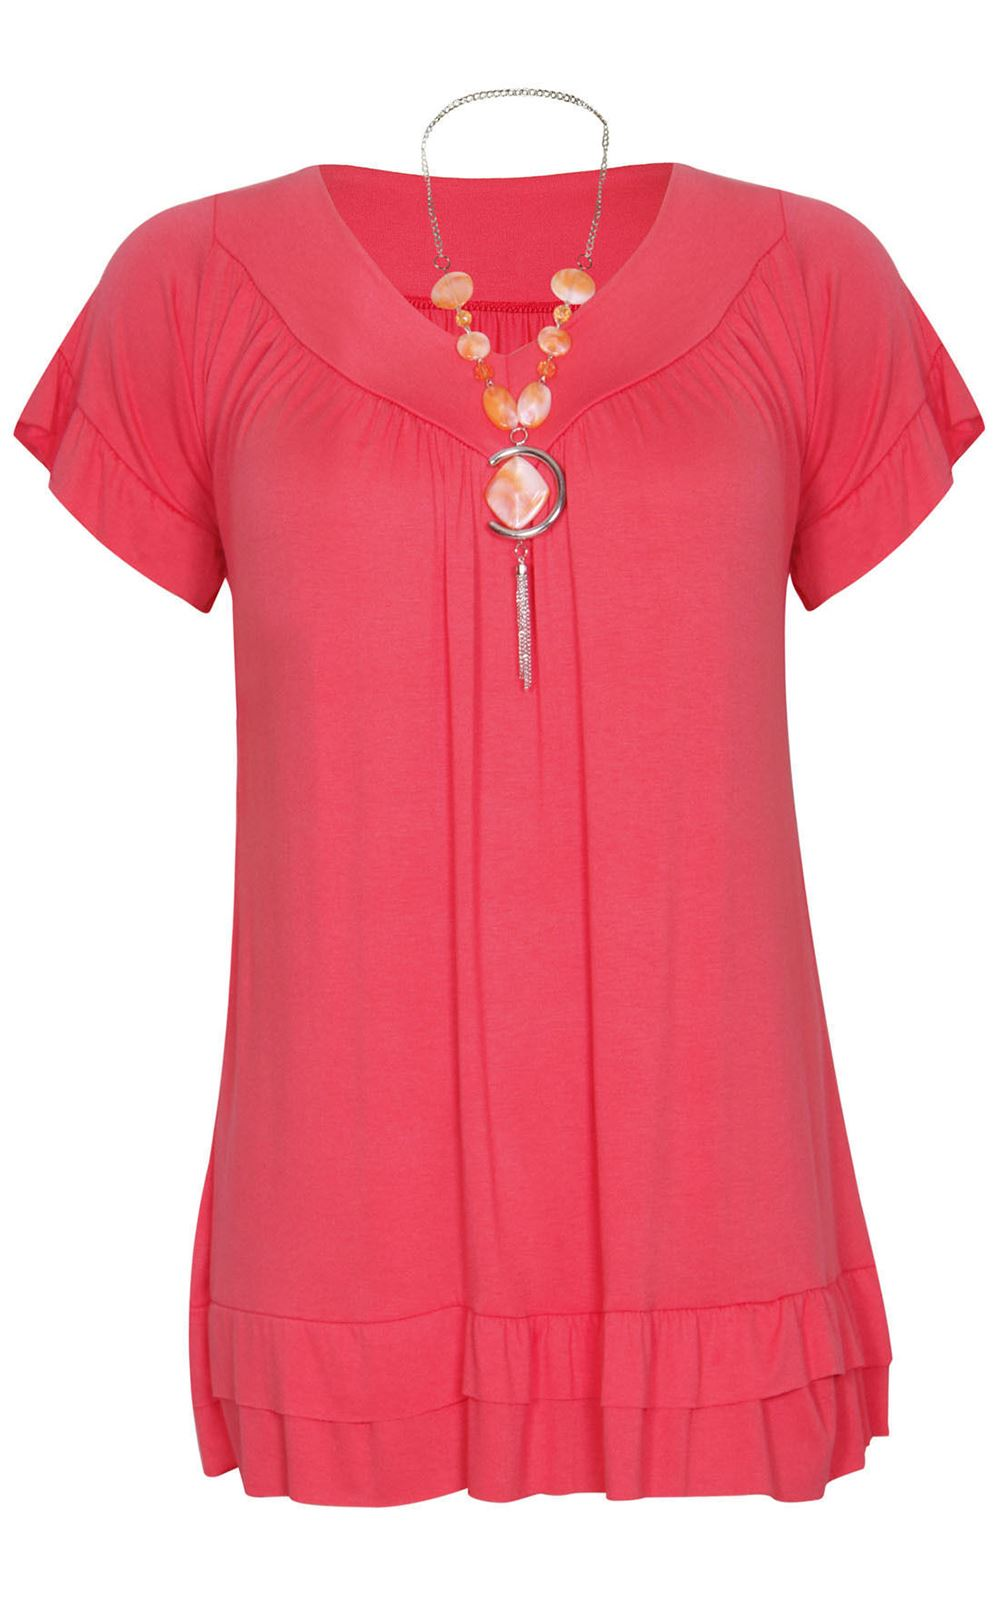 Shop eBay for great deals on Short Sleeve Tunic Tops & Blouses for Women. You'll find new or used products in Short Sleeve Tunic Tops & Blouses for Women on eBay. Free shipping on selected items.